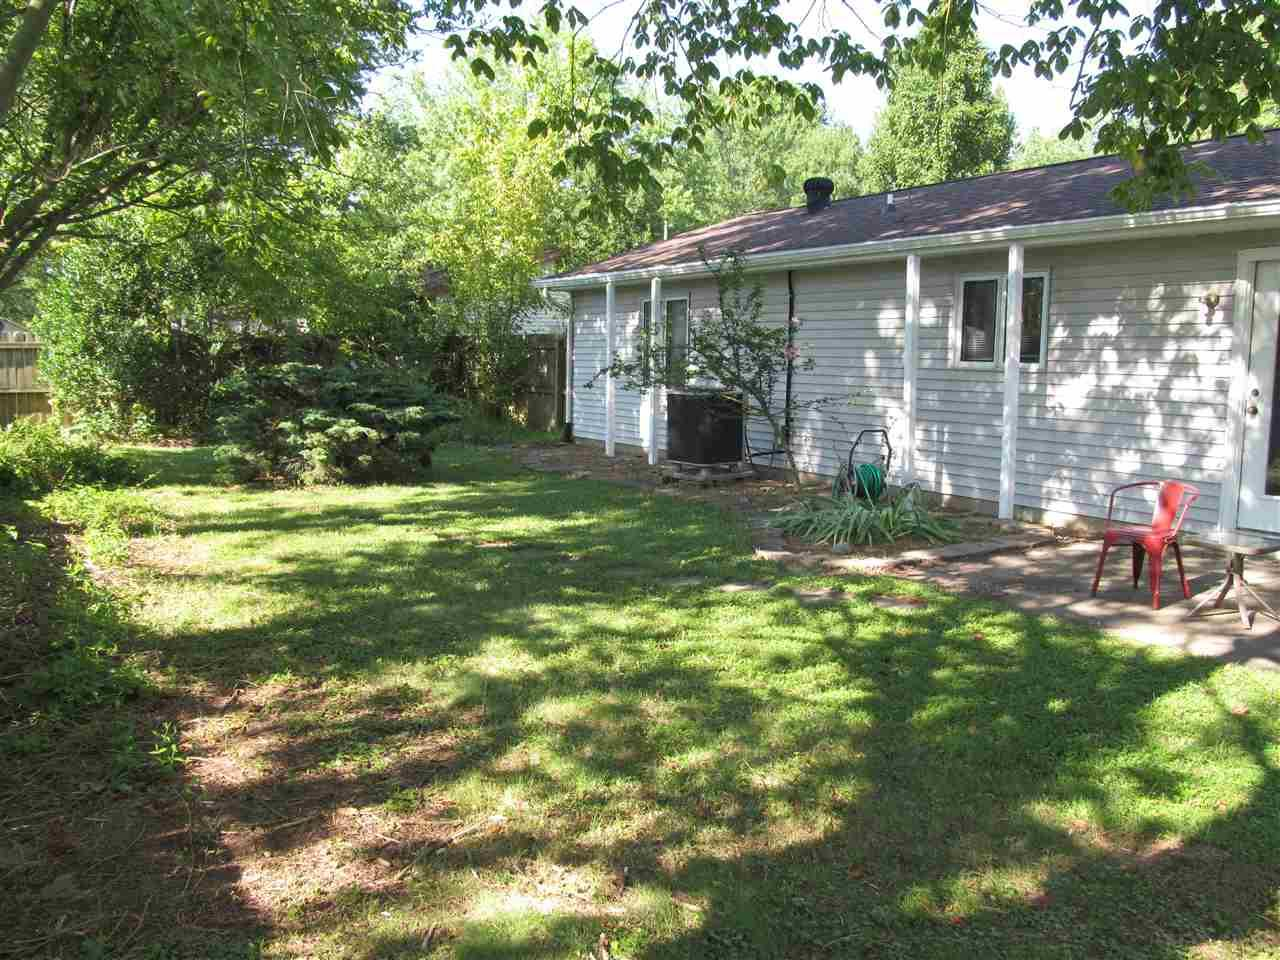 115 Hel Mar Dr, Mitchell, IN, 47446 - SOLD LISTING | Carpenter ...